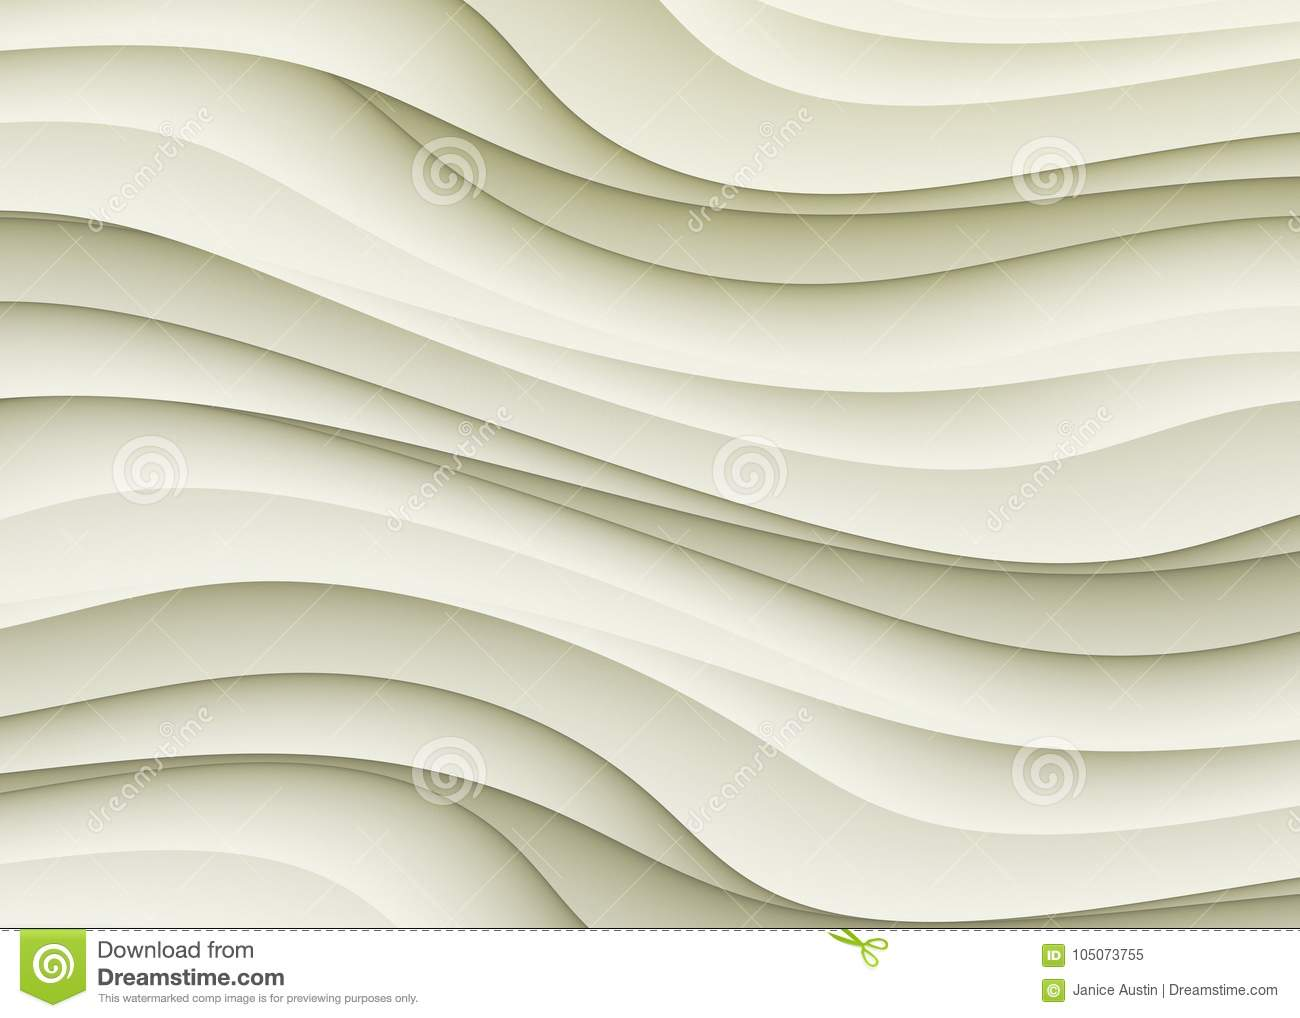 Ivory Beige Gray Curves Abstract Background Wallpaper Design